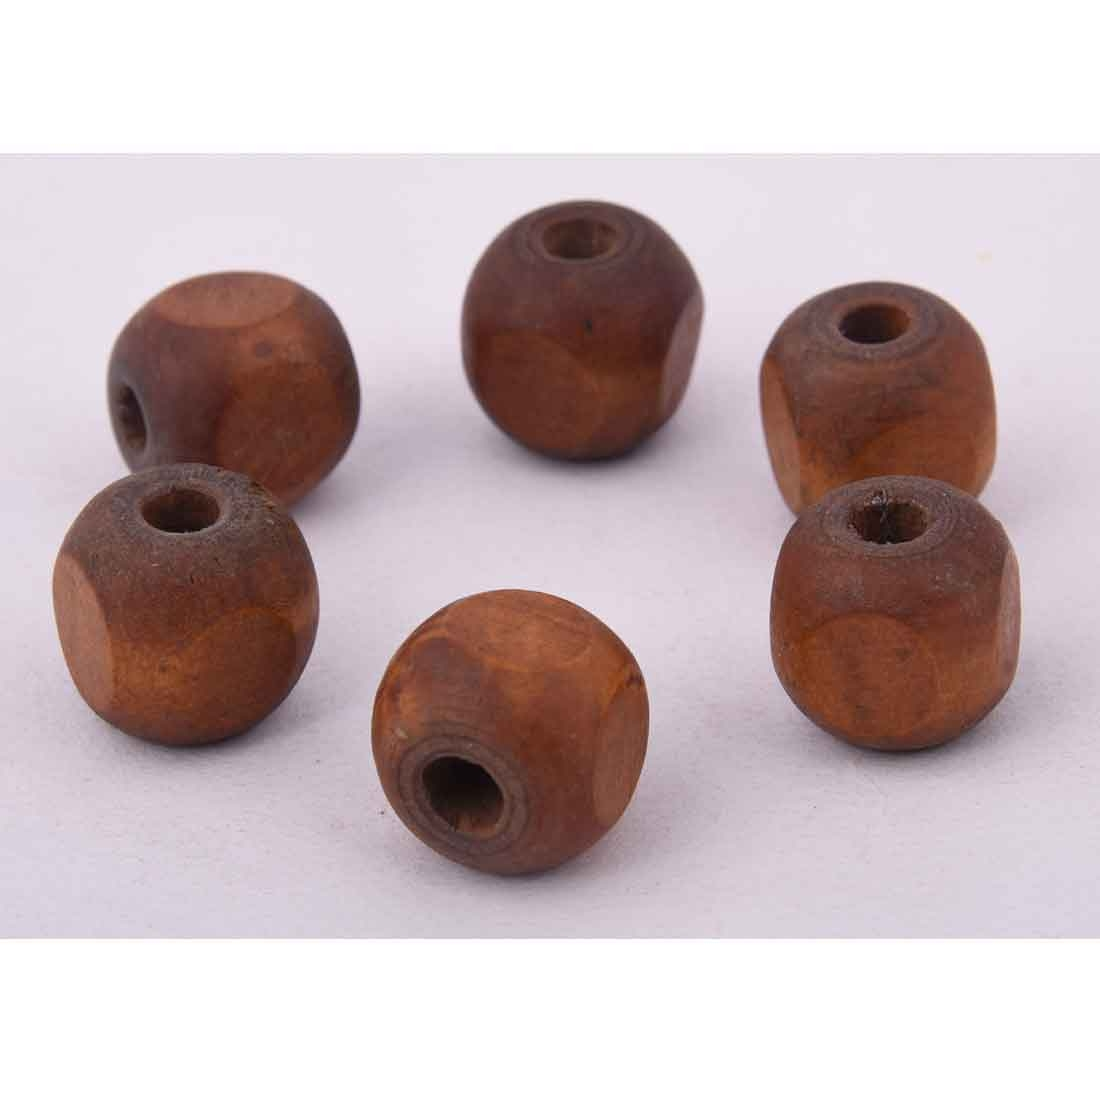 Beads India 1700092 Handcrafted Wooden Beads/Discounts Above 500 pcs